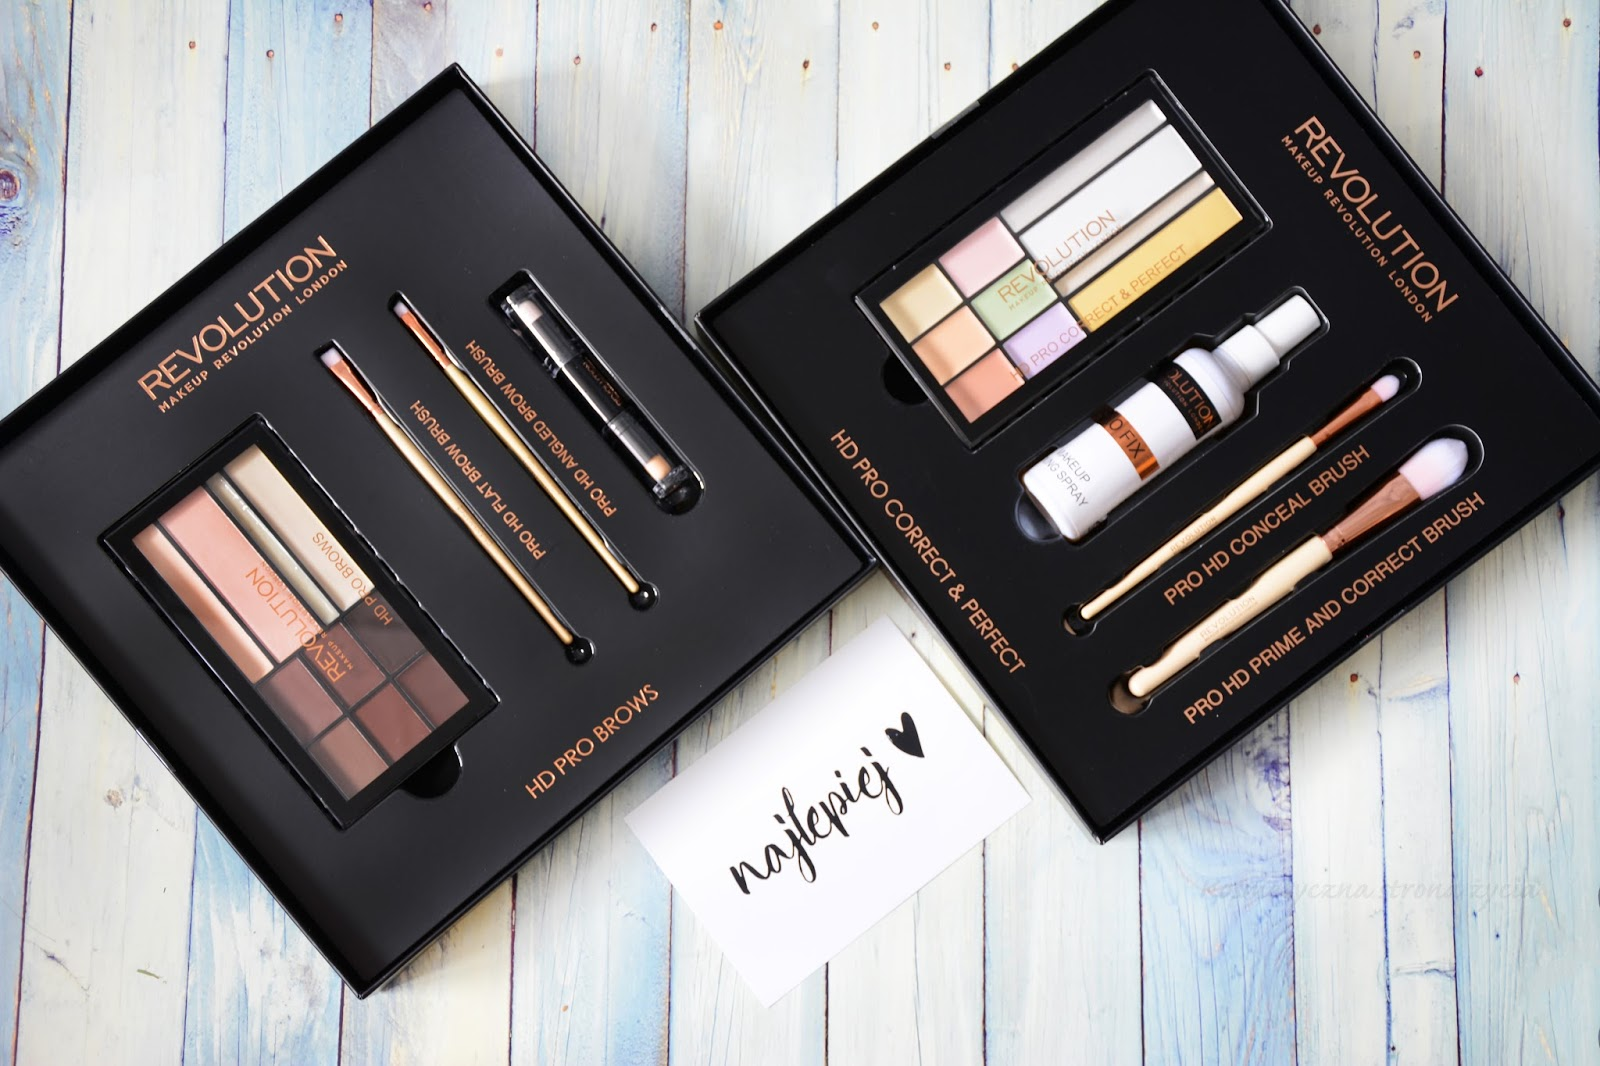 MAKEUP REVOLUTION ZESTAW HD PRO BROWS ORAZ PRO HD PRIME AND CORRECTOR BRUSH